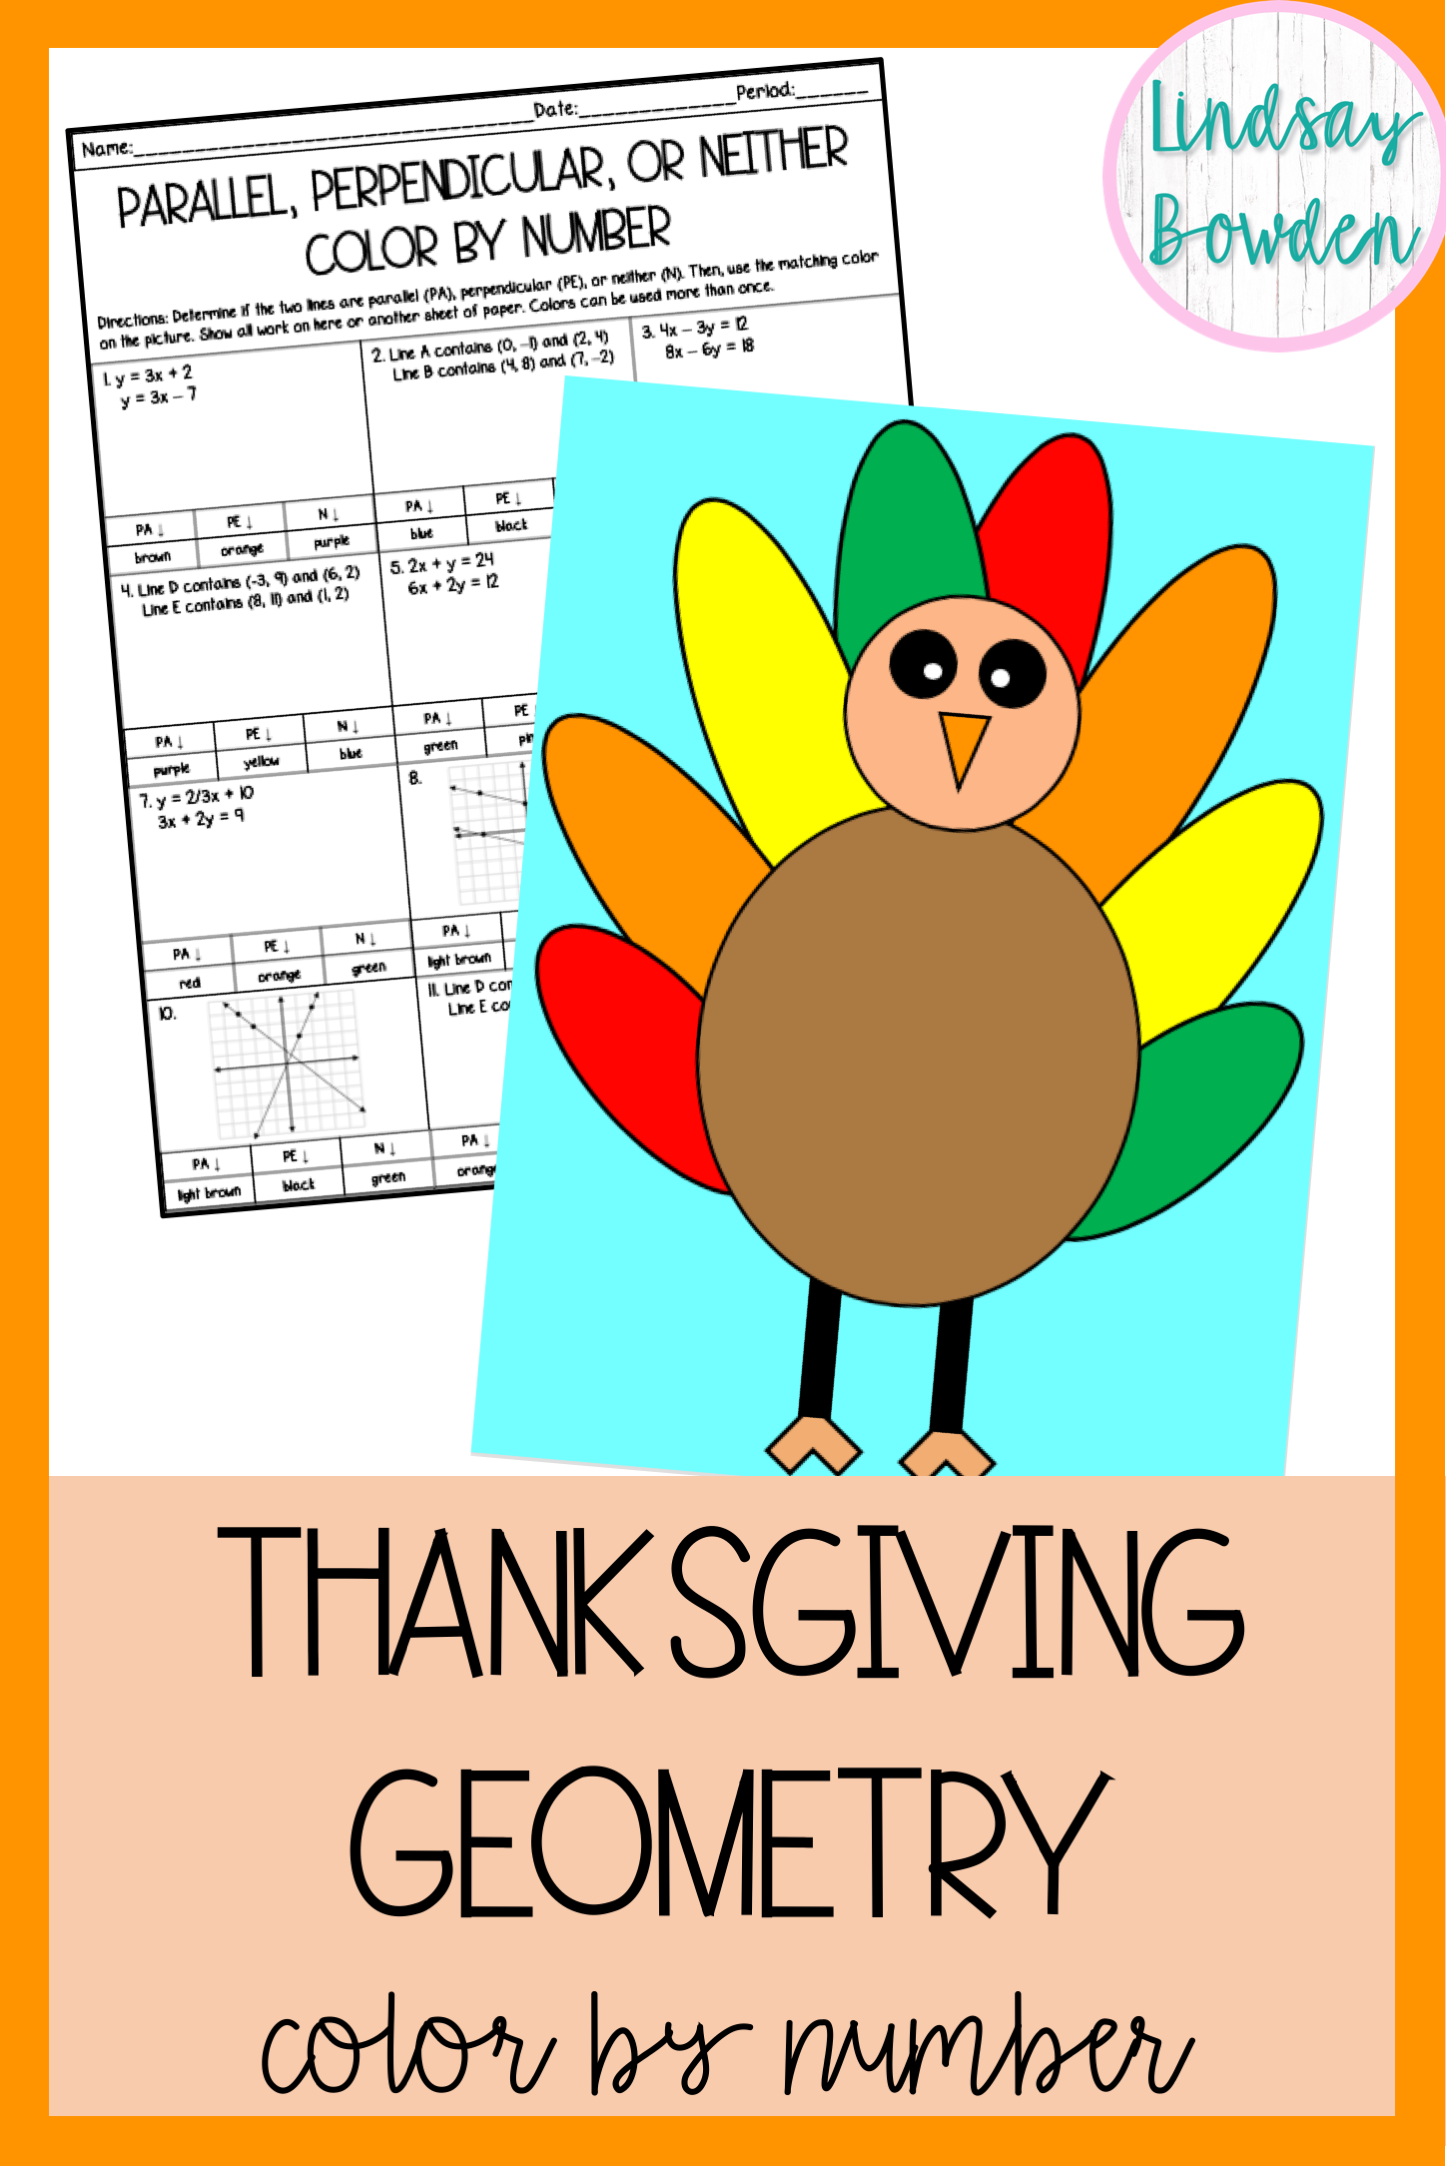 Thanksgiving Math Parallel Perpendicular Or Neither